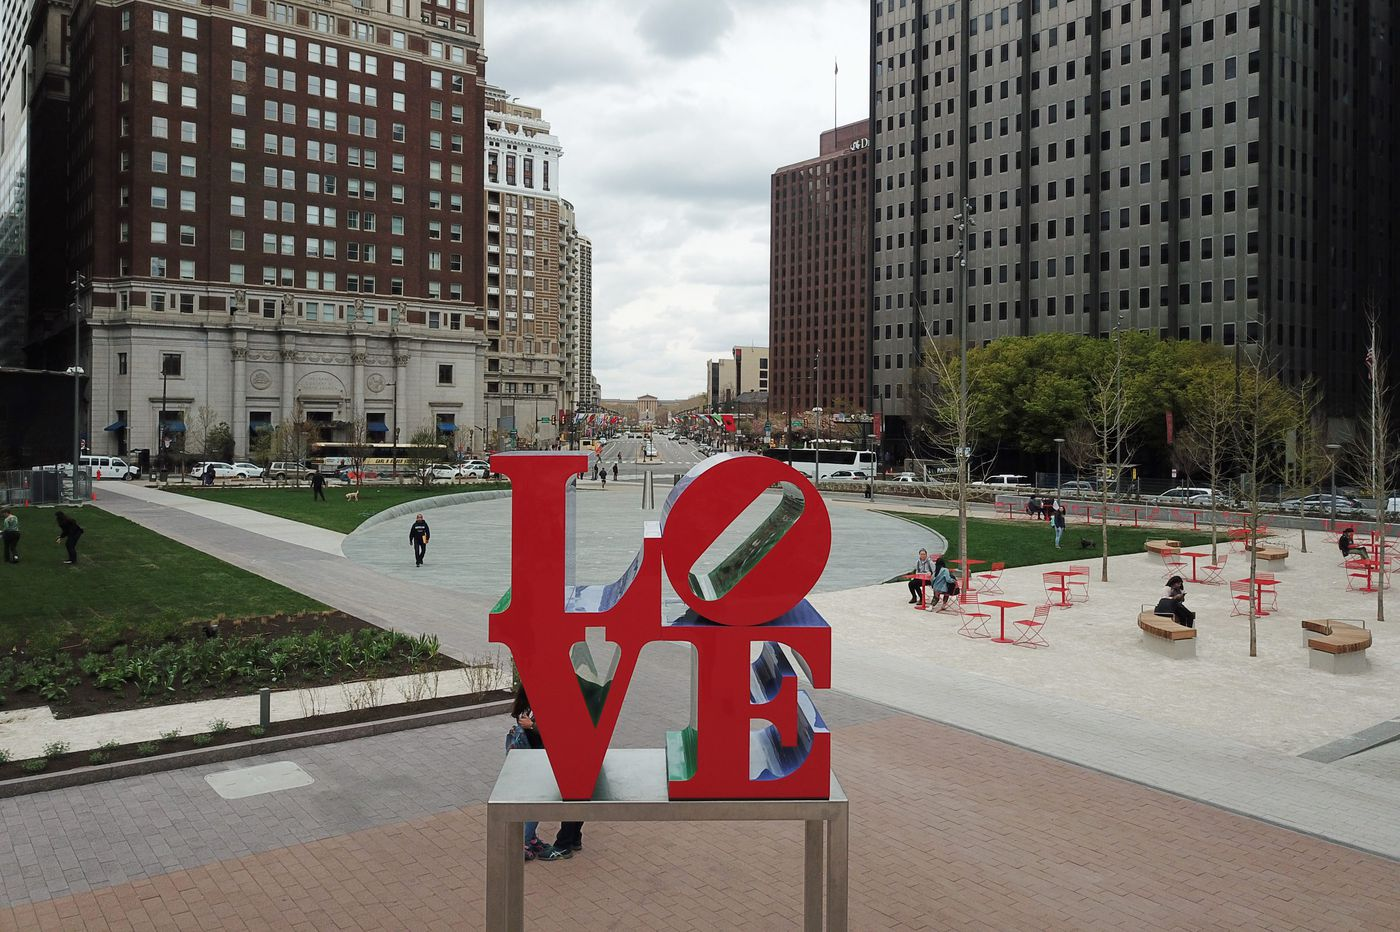 Couples can now get married in front of the LOVE sculpture in LOVE Park